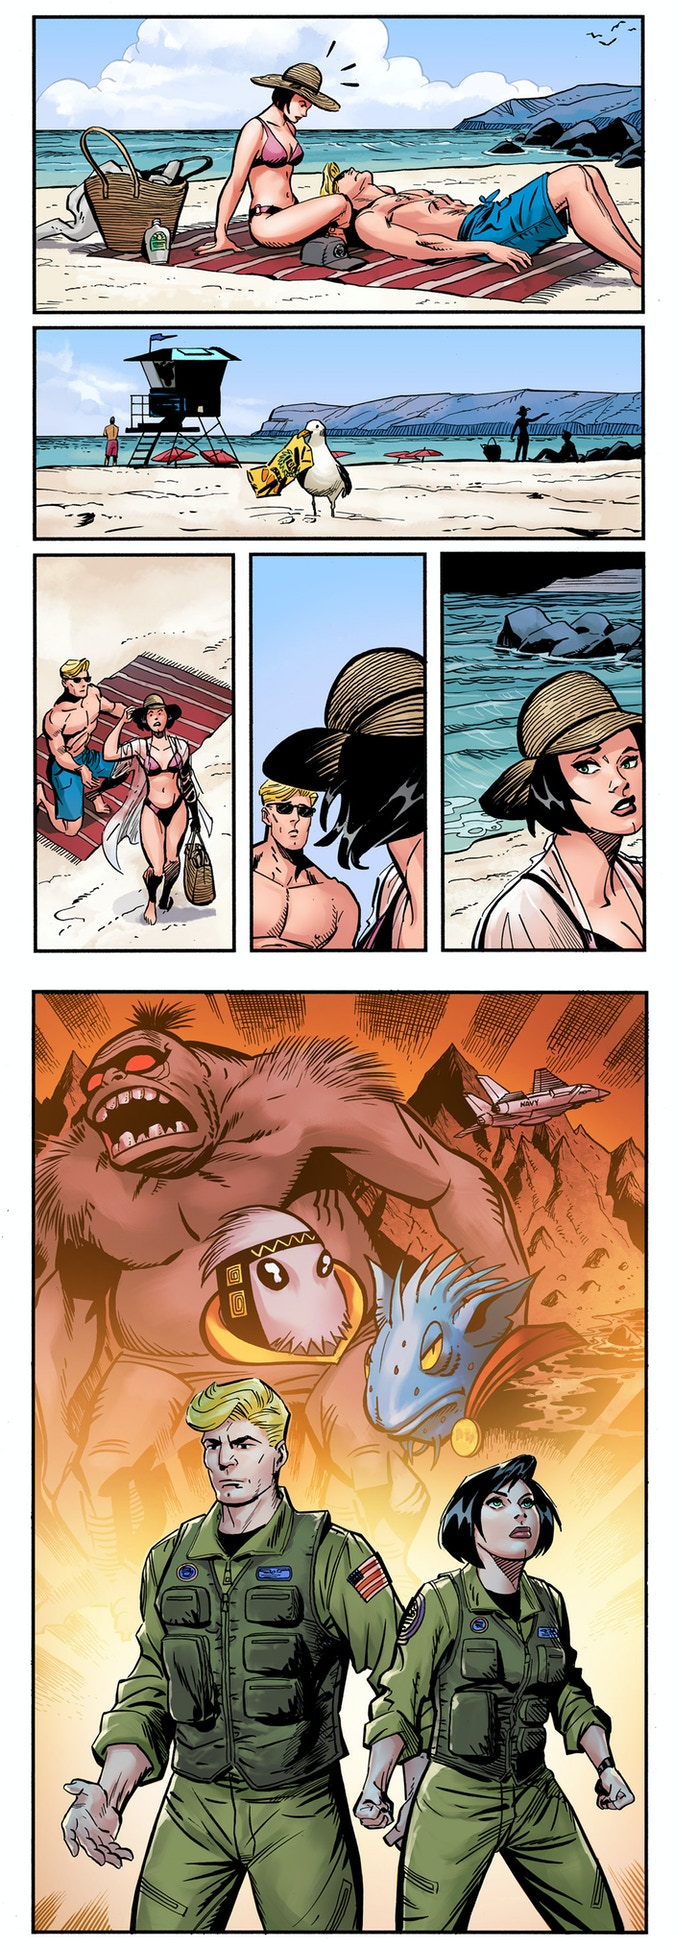 RETURN to MONSTER ISLAND preview in full-color!